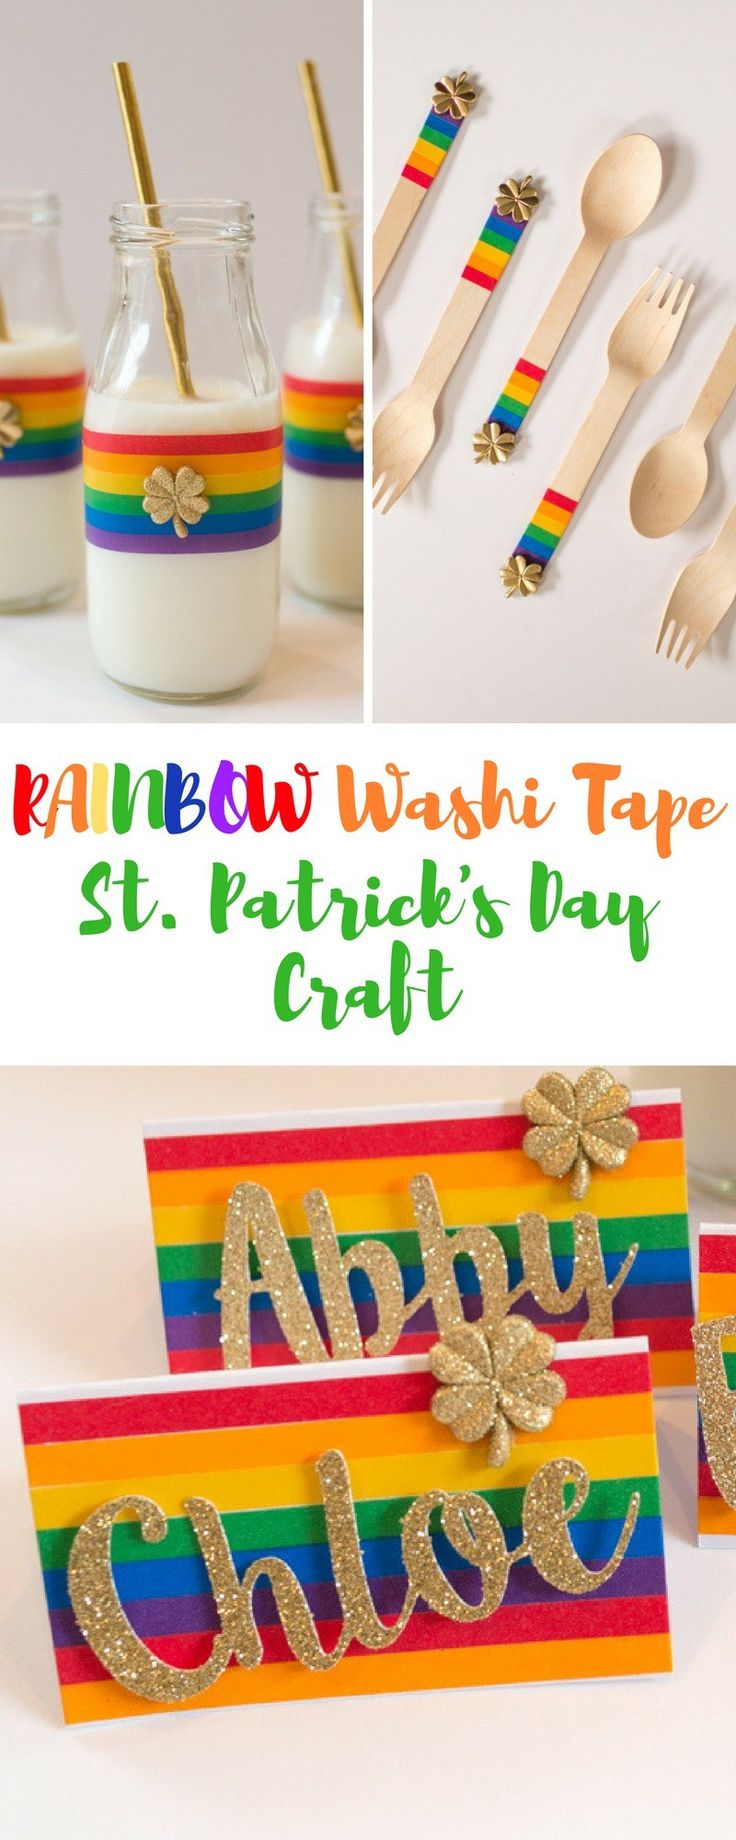 St. Patrick's Day Craft on Love The Day